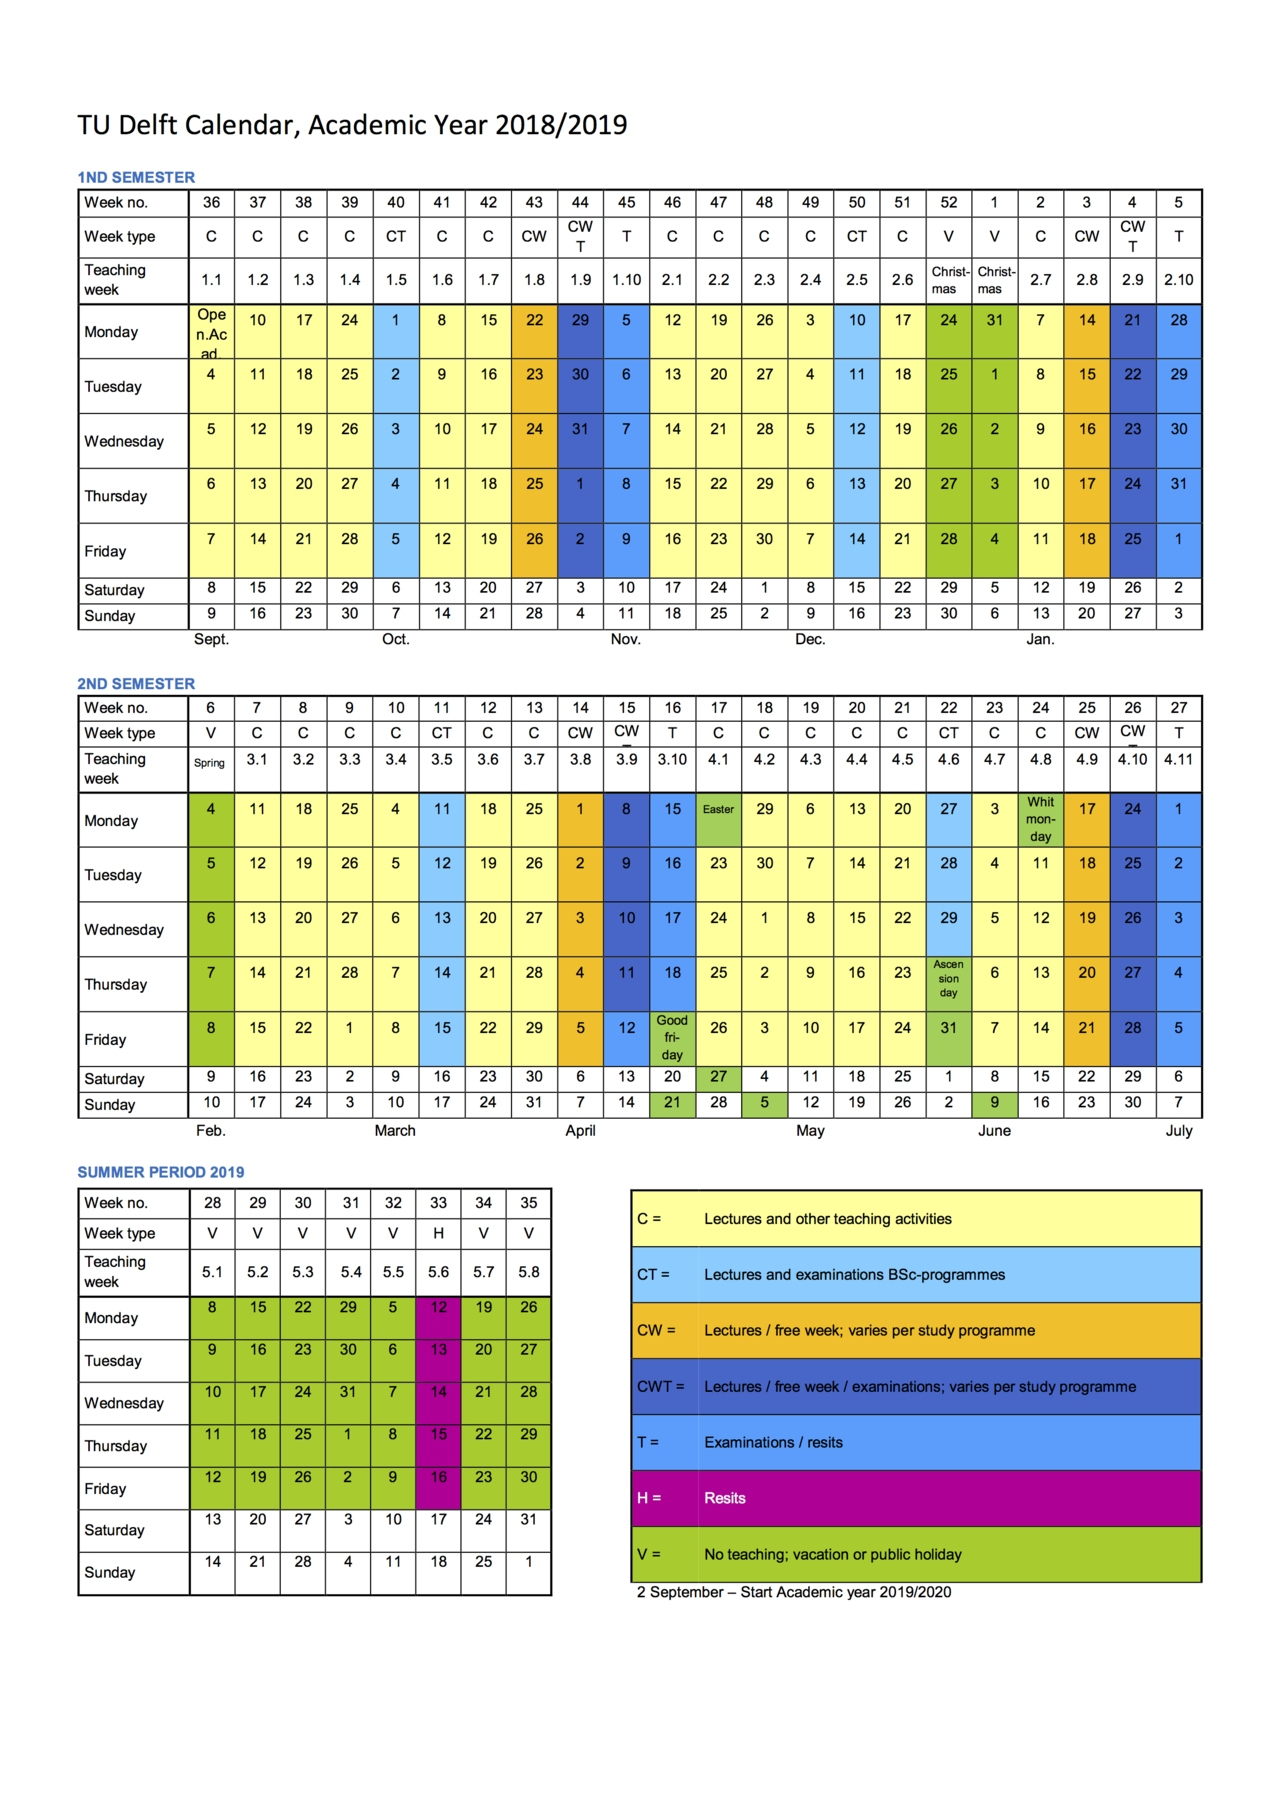 Academic Calendar intended for One Page 2 Years Calendar 2019 2020 With Week Number